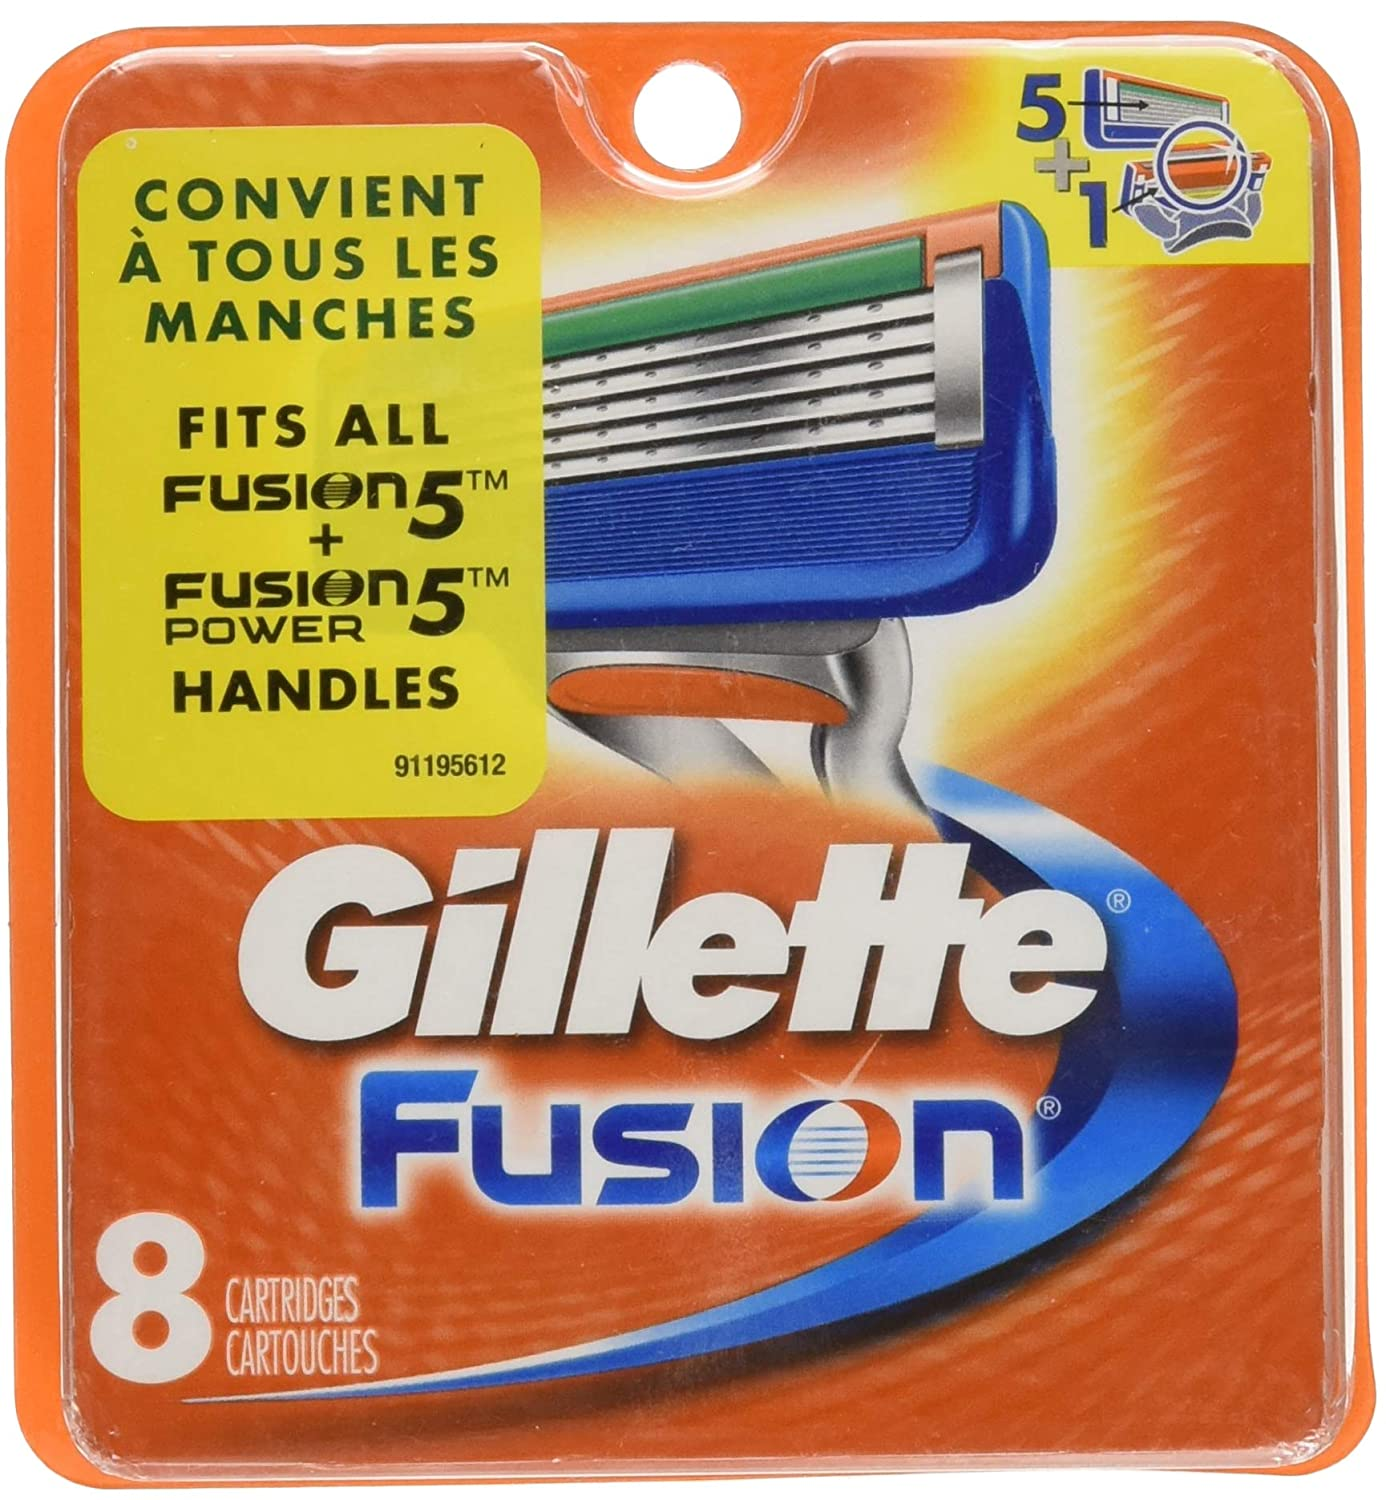 Gillette Fusion Mens Razor Blades 8 Pack Cartridges Refills